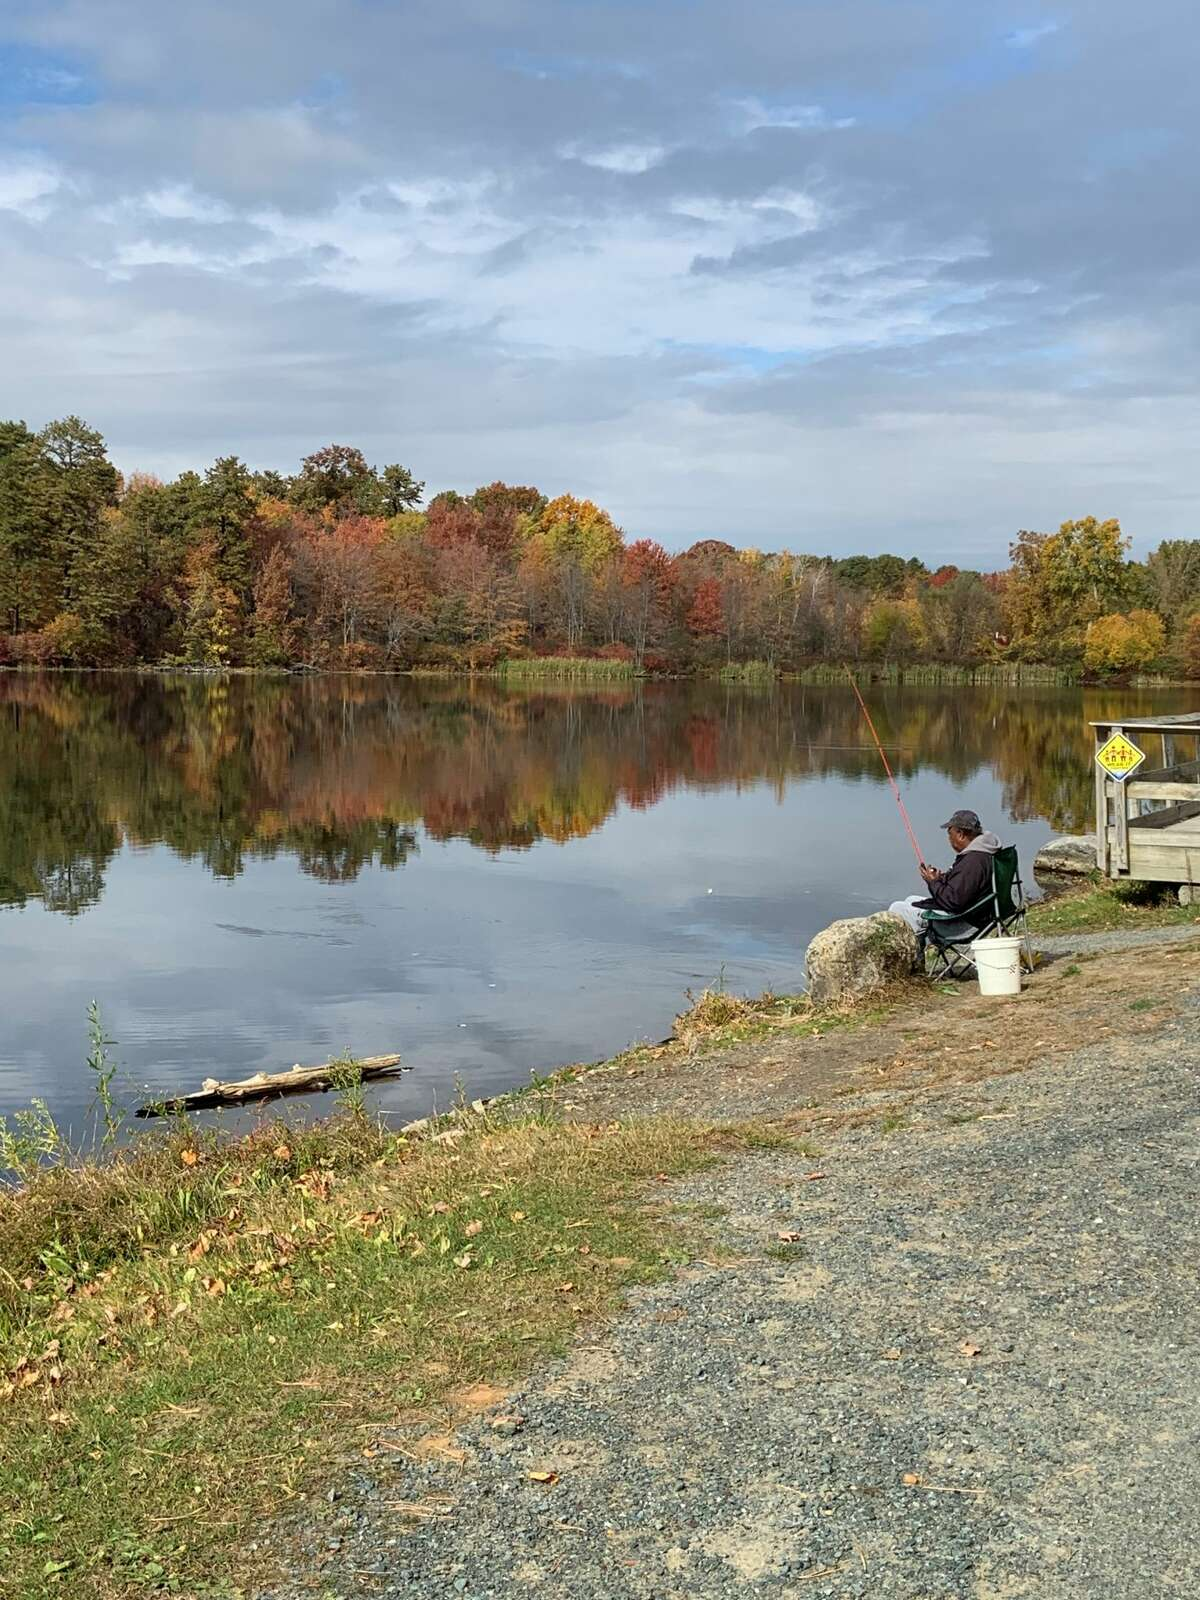 A couple of photos taken at the 6 mile waterworks park in late October by Judith Duckor of Loudonville